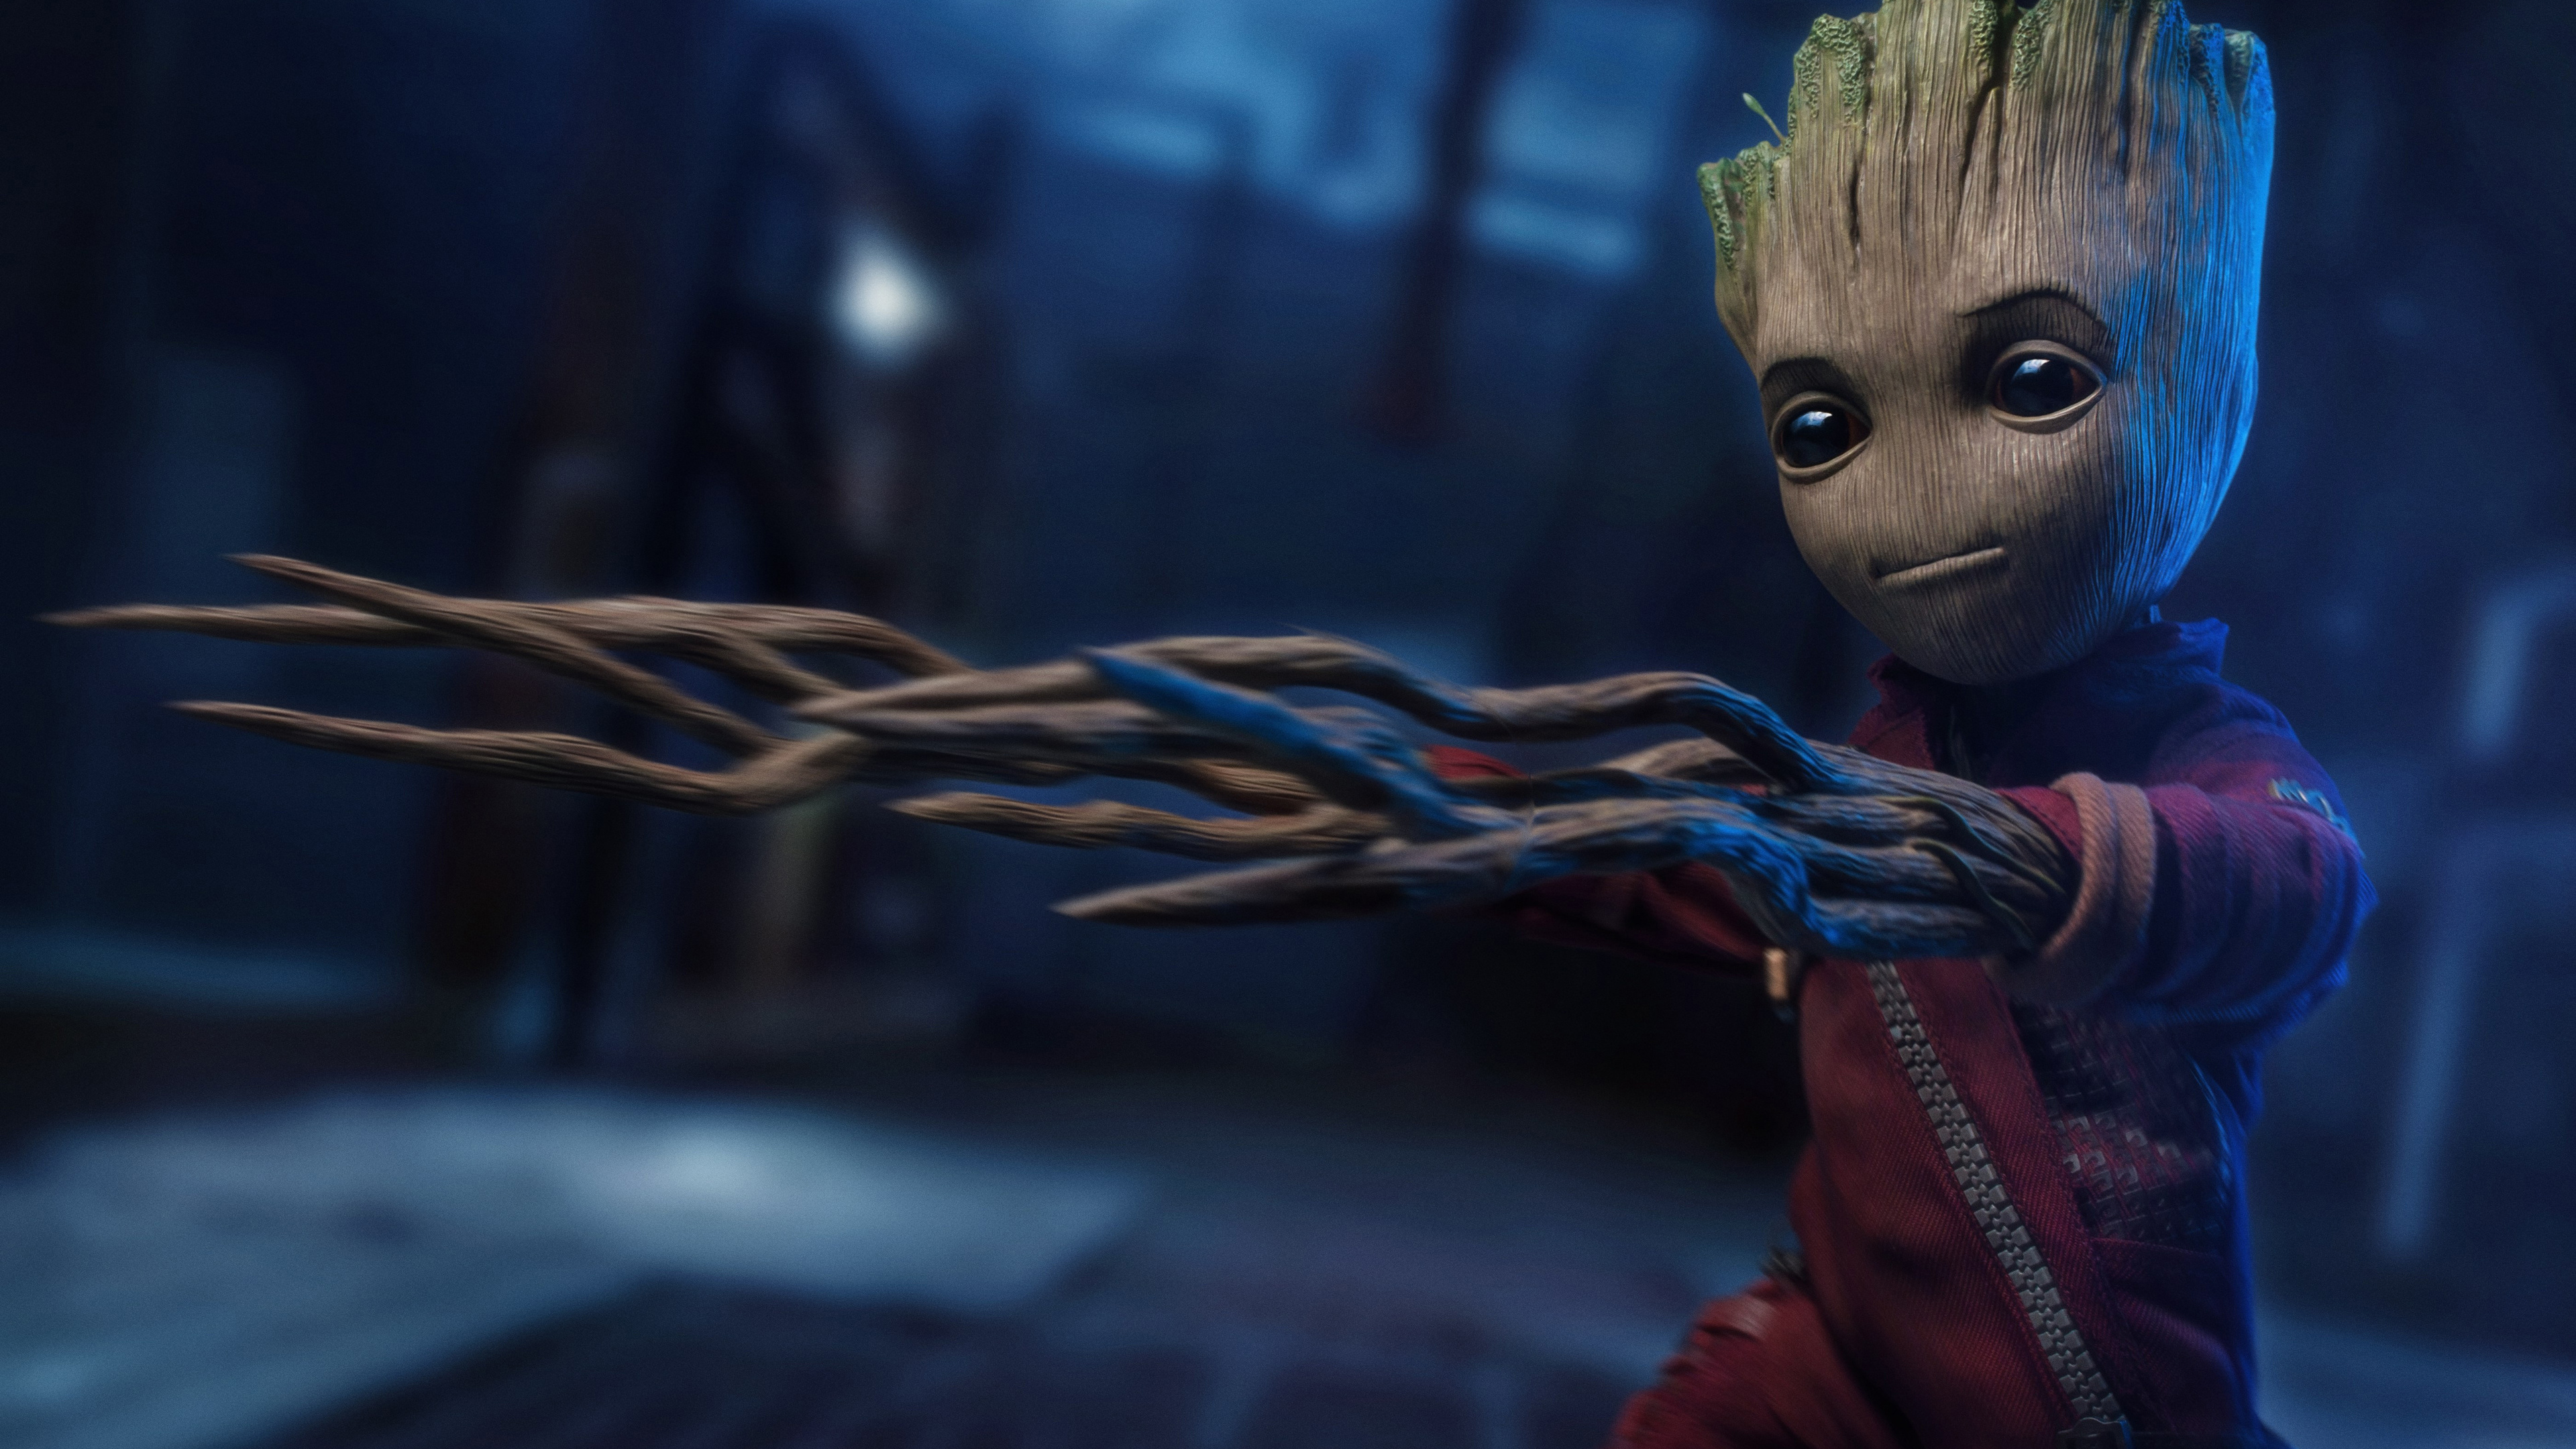 3840x2160 Baby Groot 5k 2018 4k HD 4k Wallpapers, Images